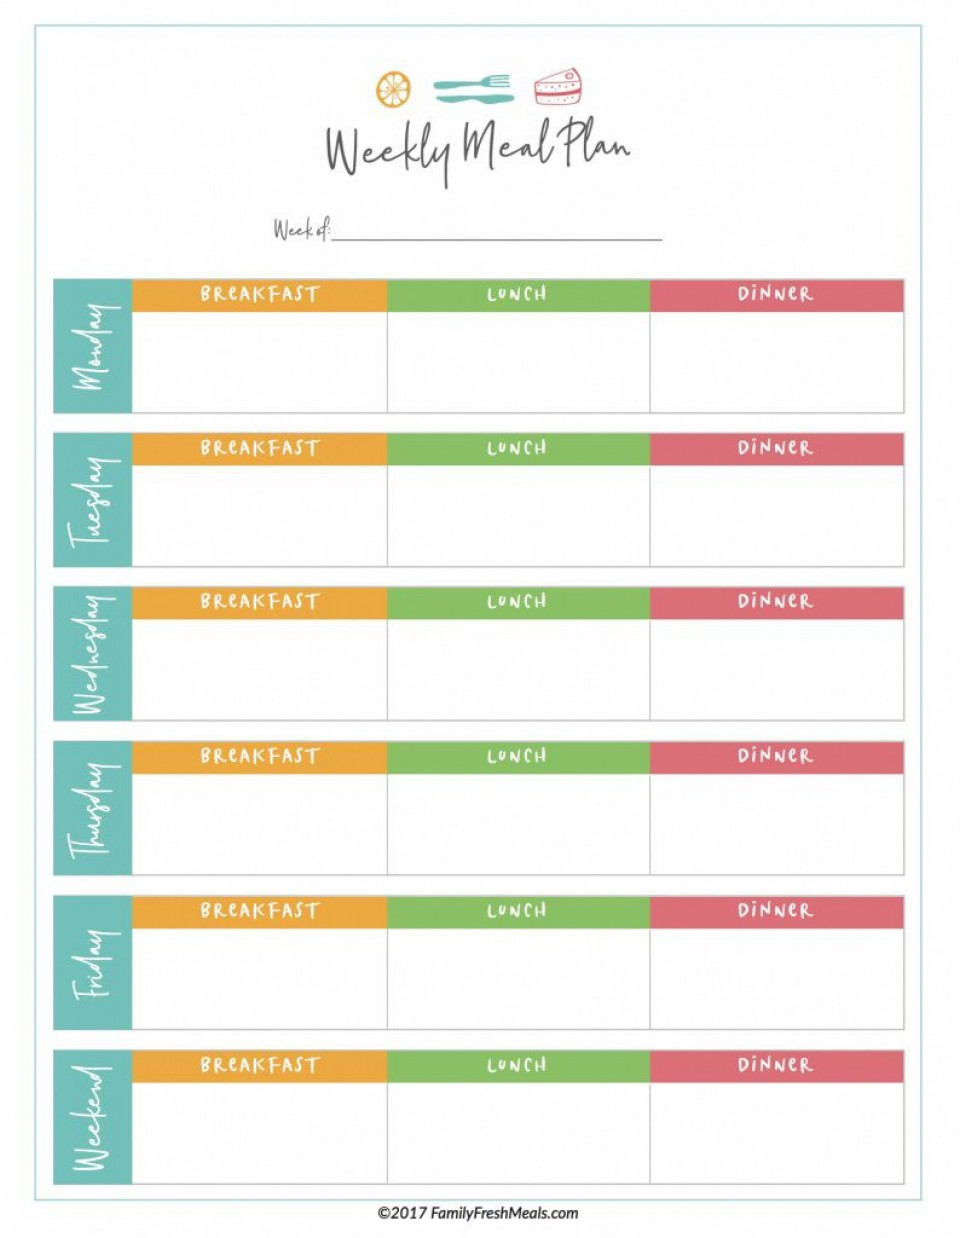 006 Magnificent Meal Plan Printable Pdf Photo  Worksheet Downloadable Template Sheet960